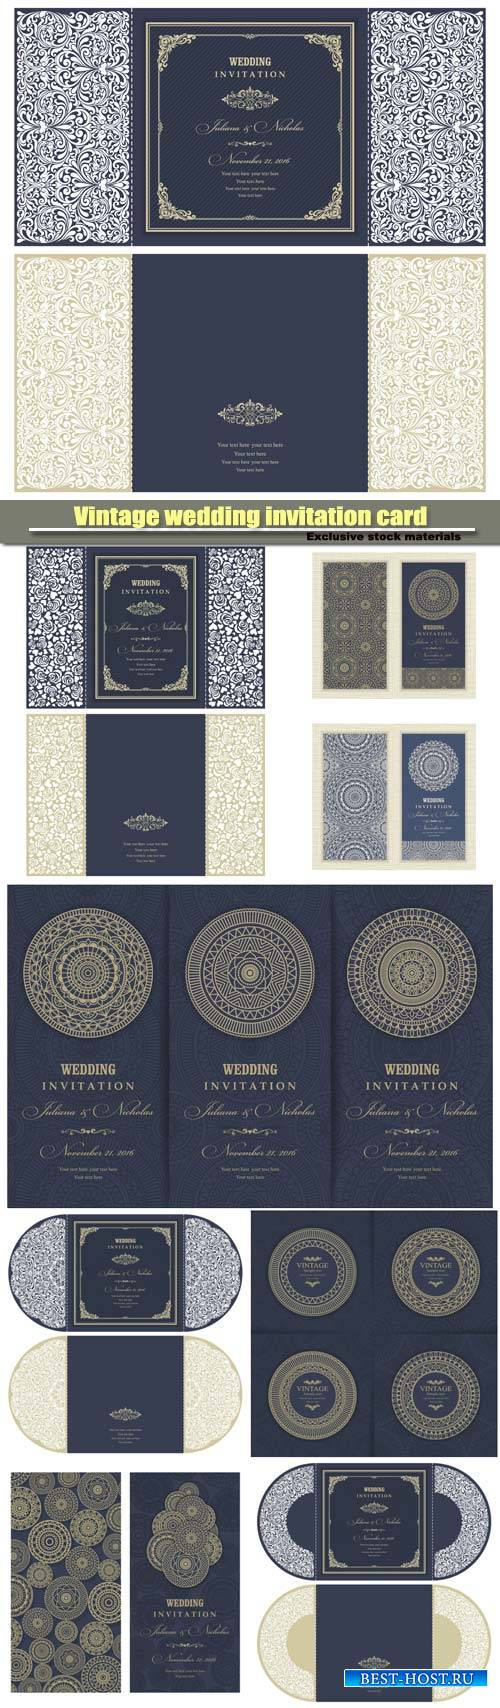 Vintage wedding invitation card, vector with patterns